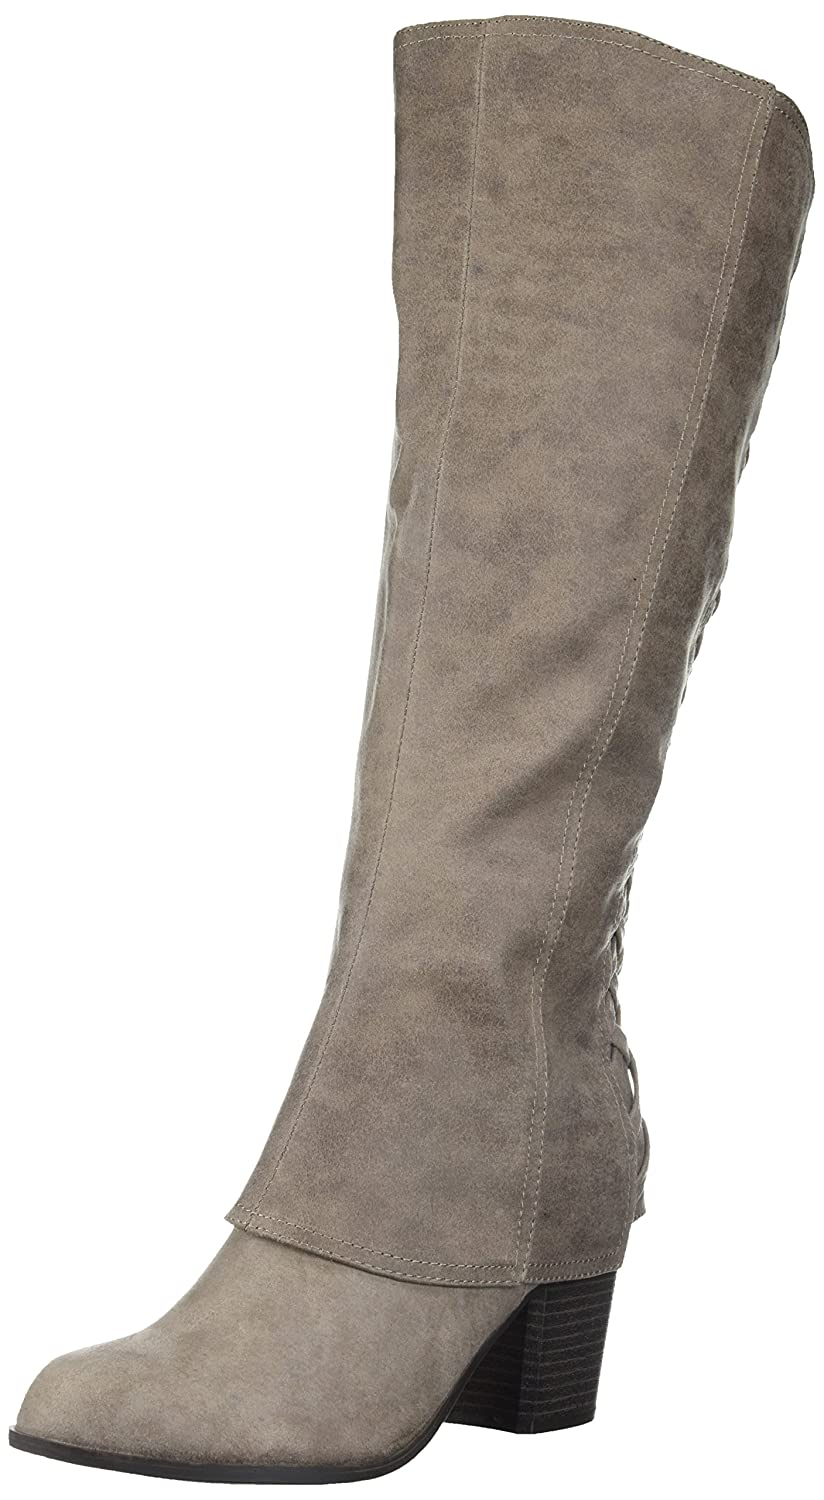 Fergalicious Women's Tootsie Wide Calf Knee High Boot B074NBRYW8 9.5 B(M) US|Doe